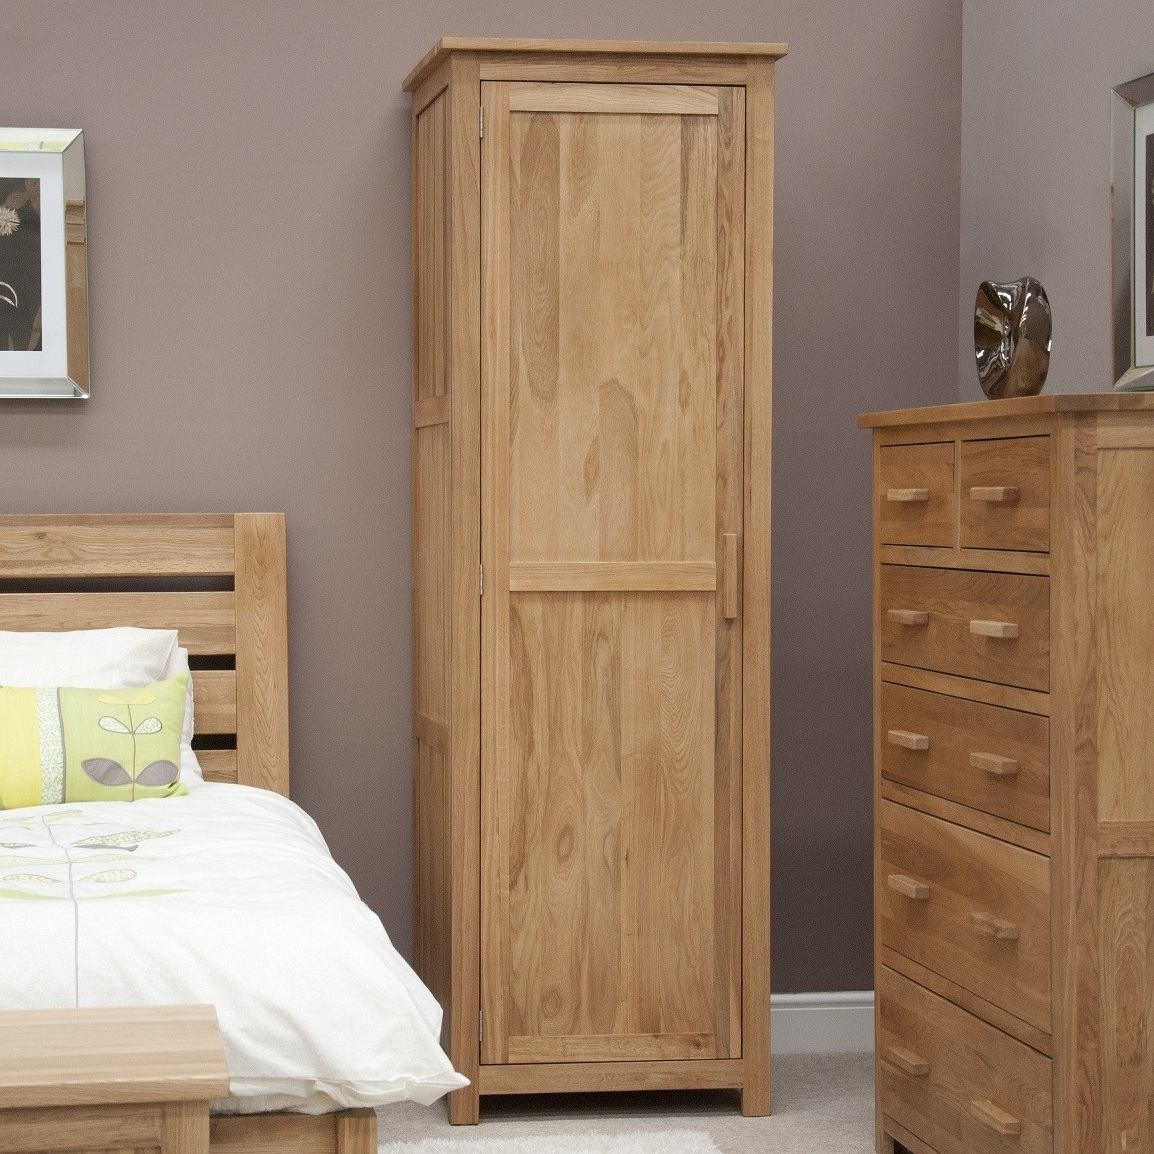 Most Recent Small Single Wardrobes Inside Single Wardrobe With Drawers And Shelves Uk Small Oak Cheap This (View 8 of 15)